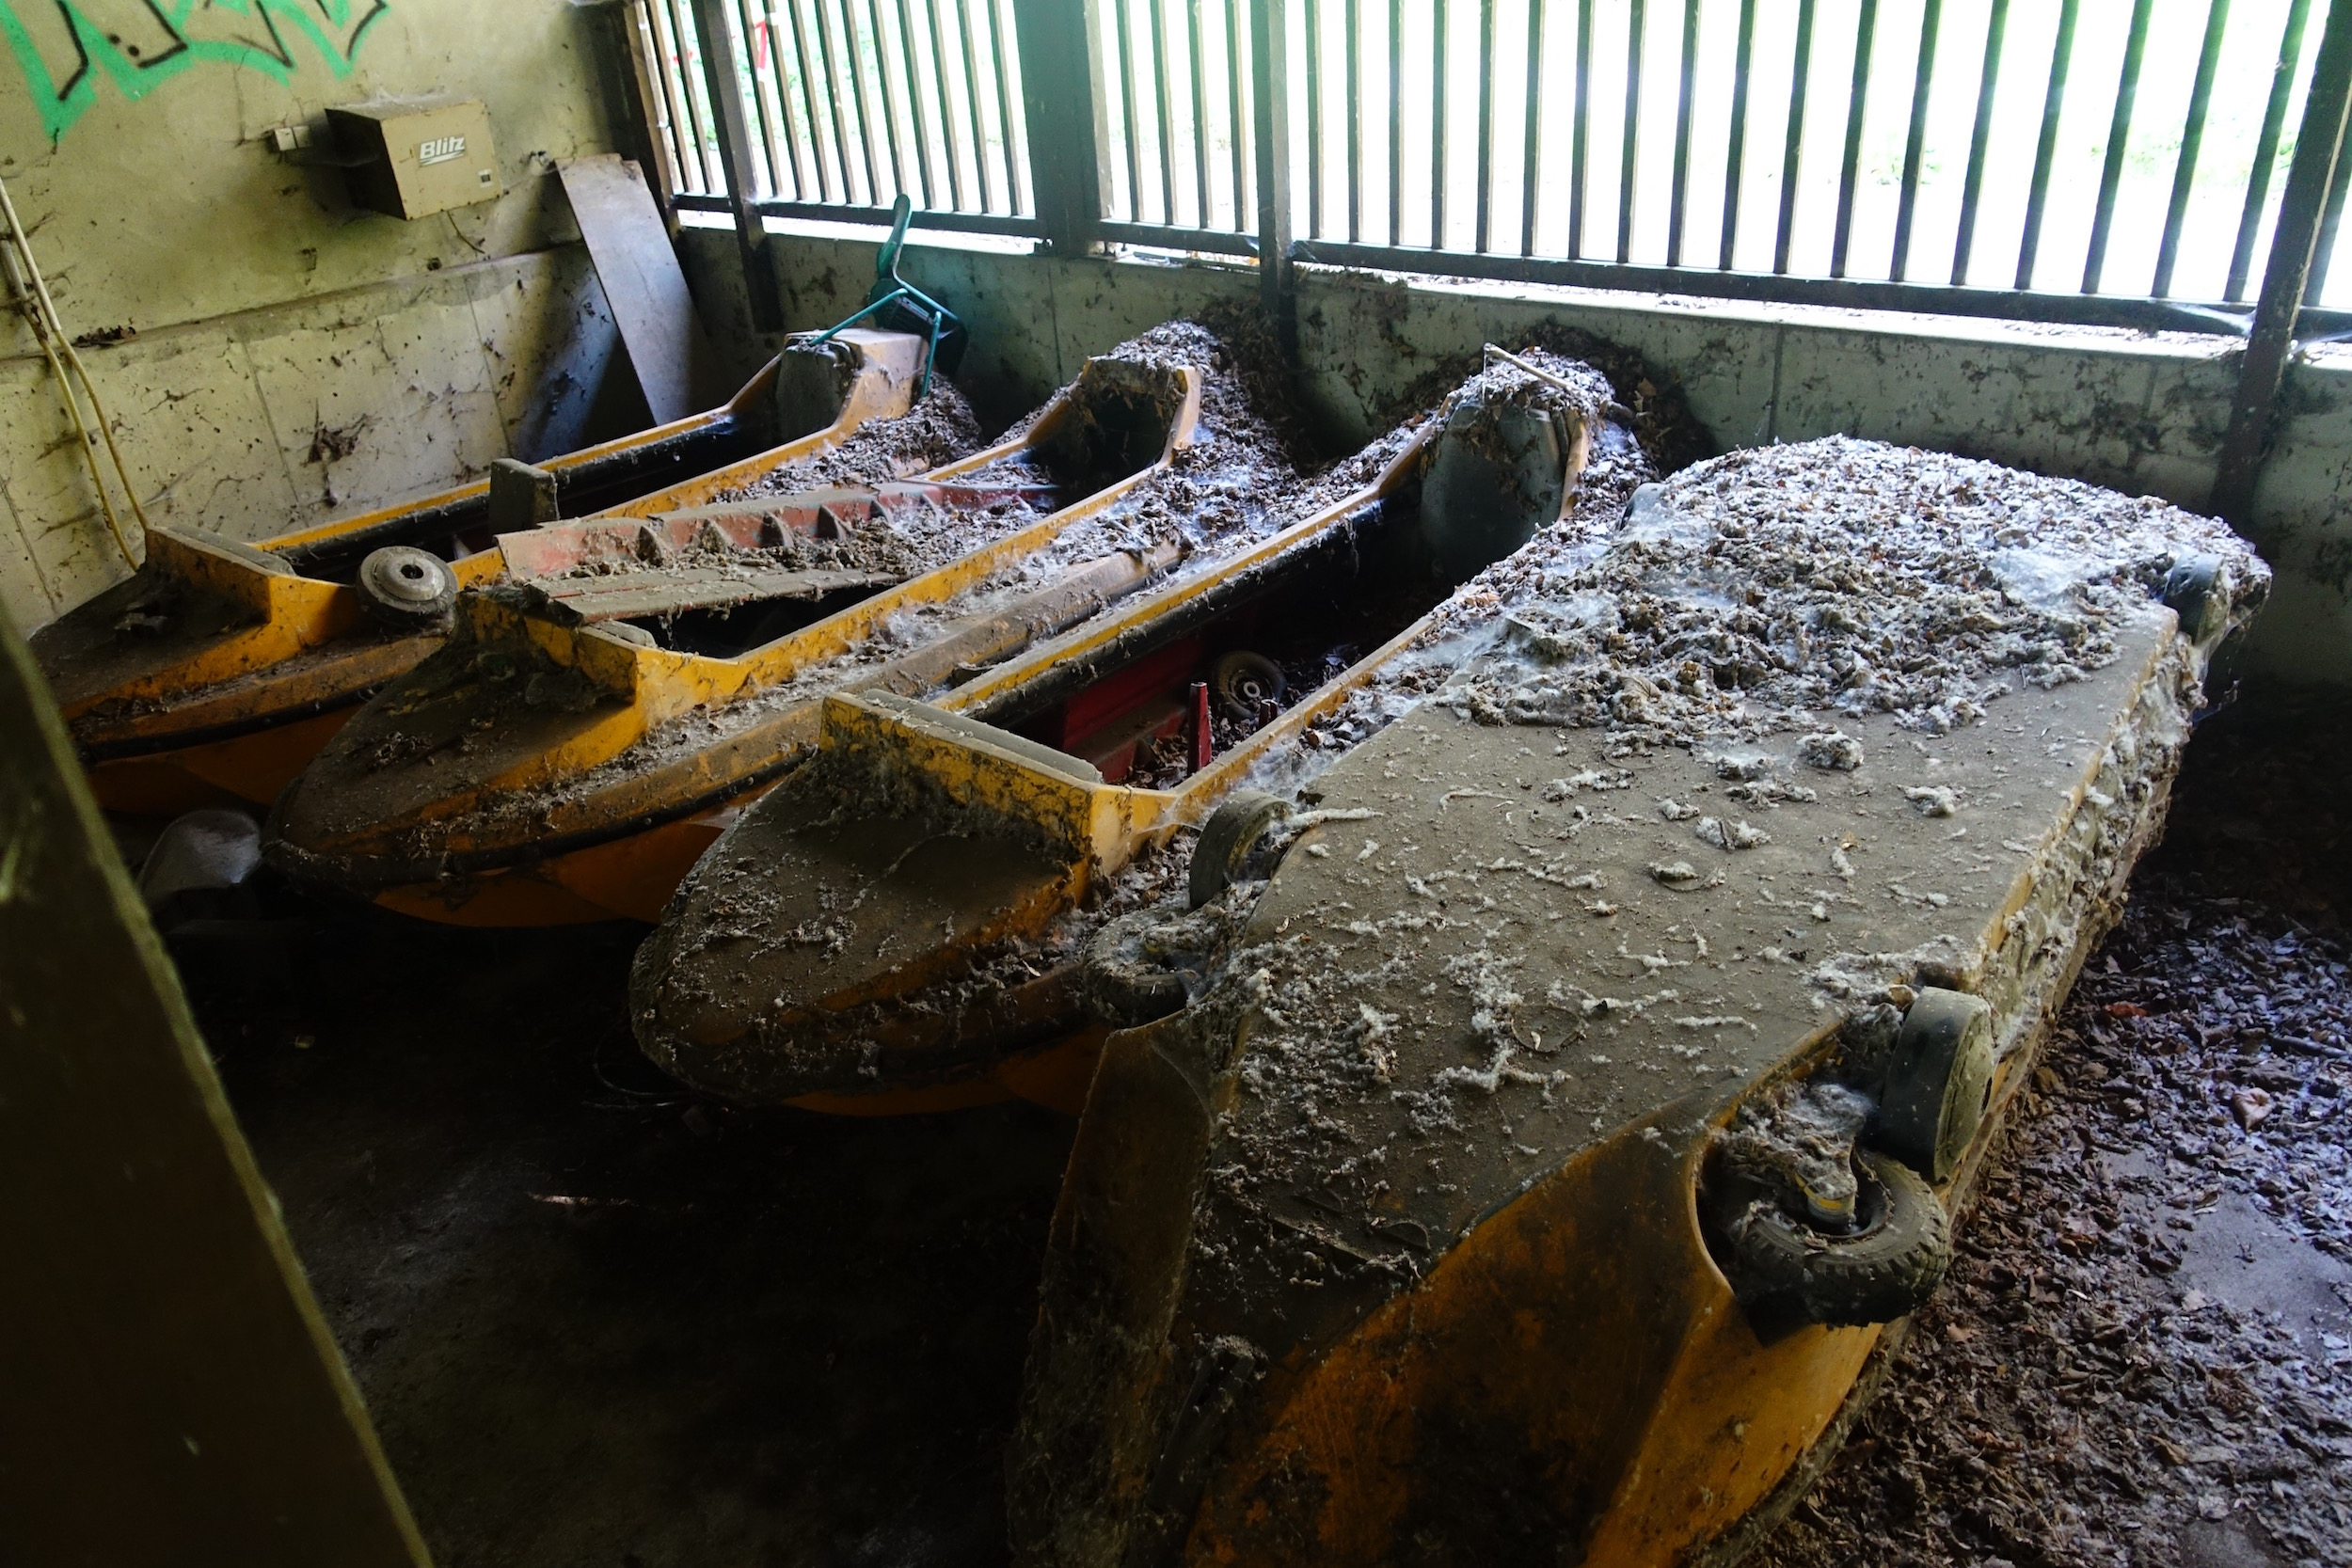 The abandoned log flume cars